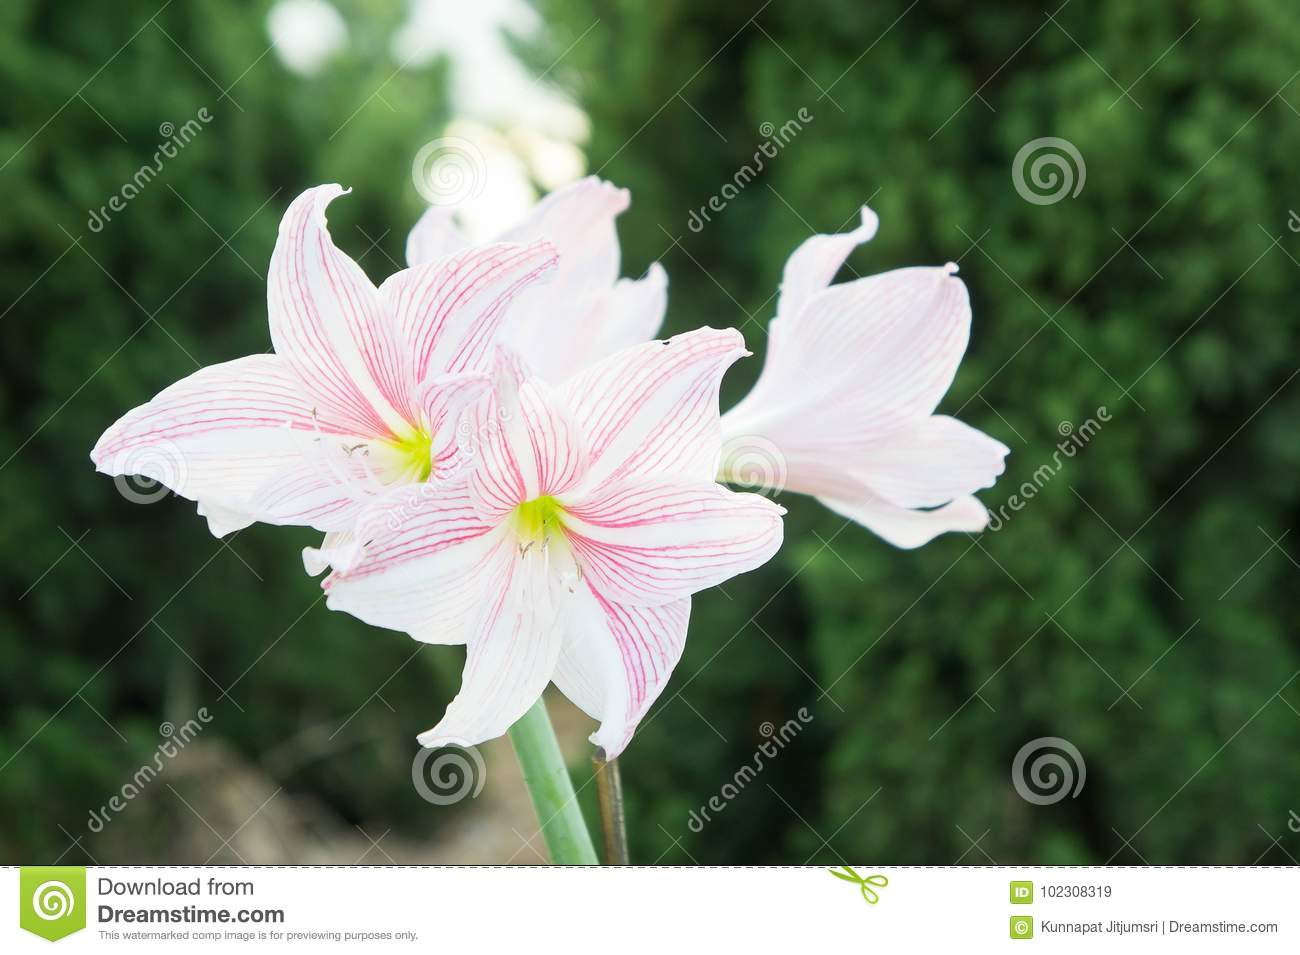 Hippeastrum flowers flowers like lilies is a beautiful romantic download hippeastrum flowers flowers like lilies is a beautiful romantic stock image image of izmirmasajfo